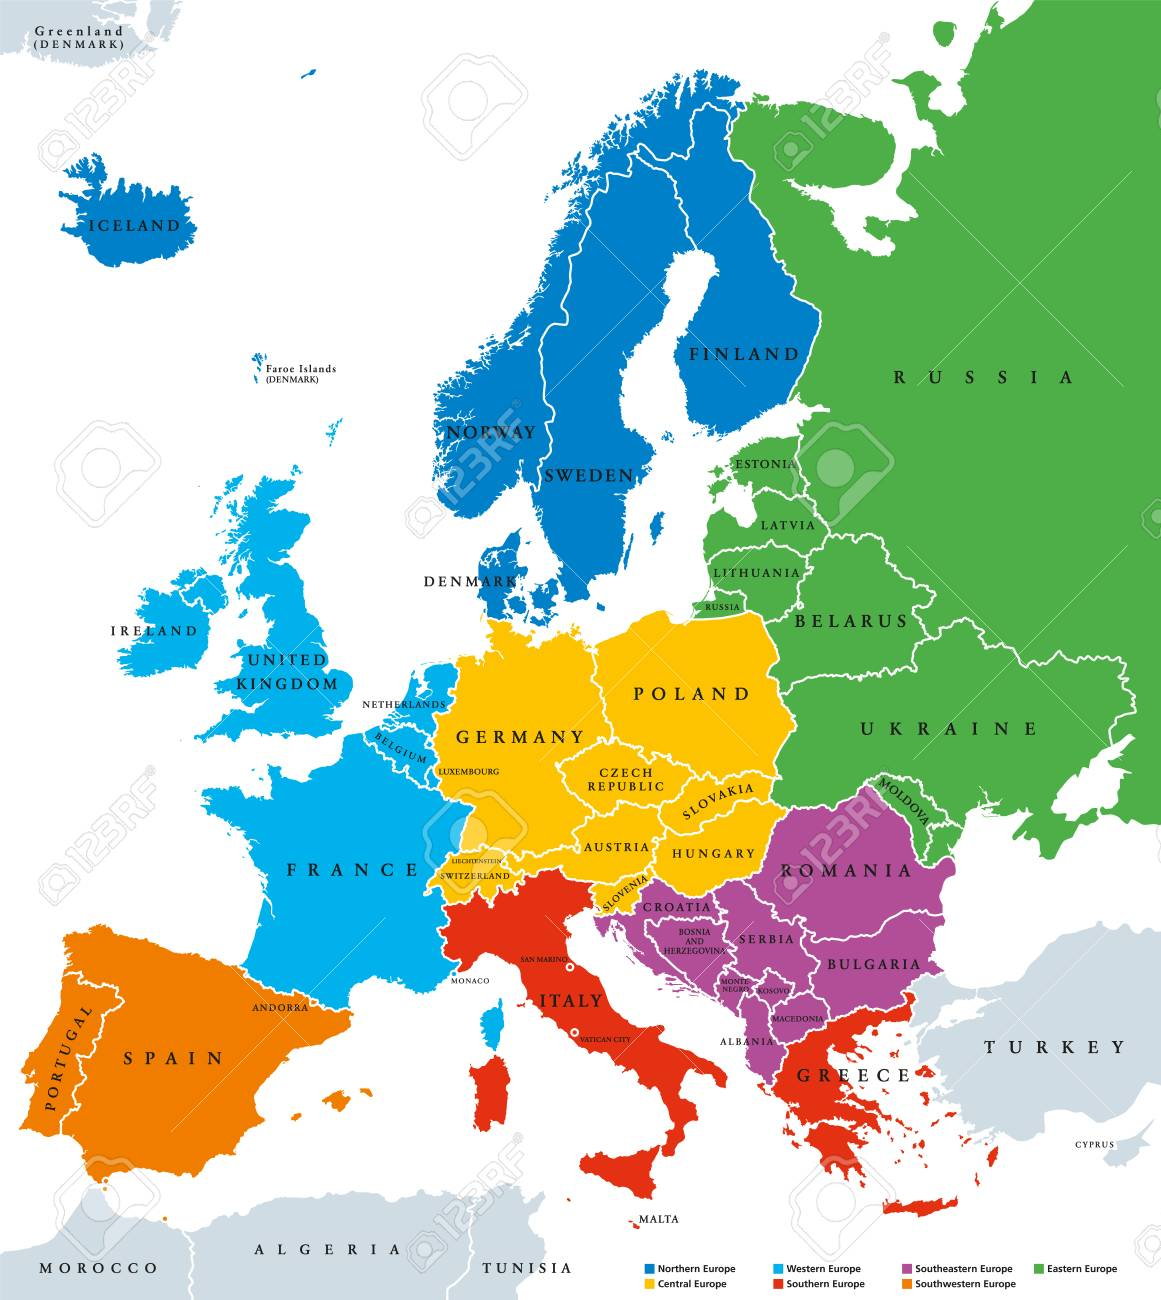 Regions Of Europe Political Map With Single Countries And English